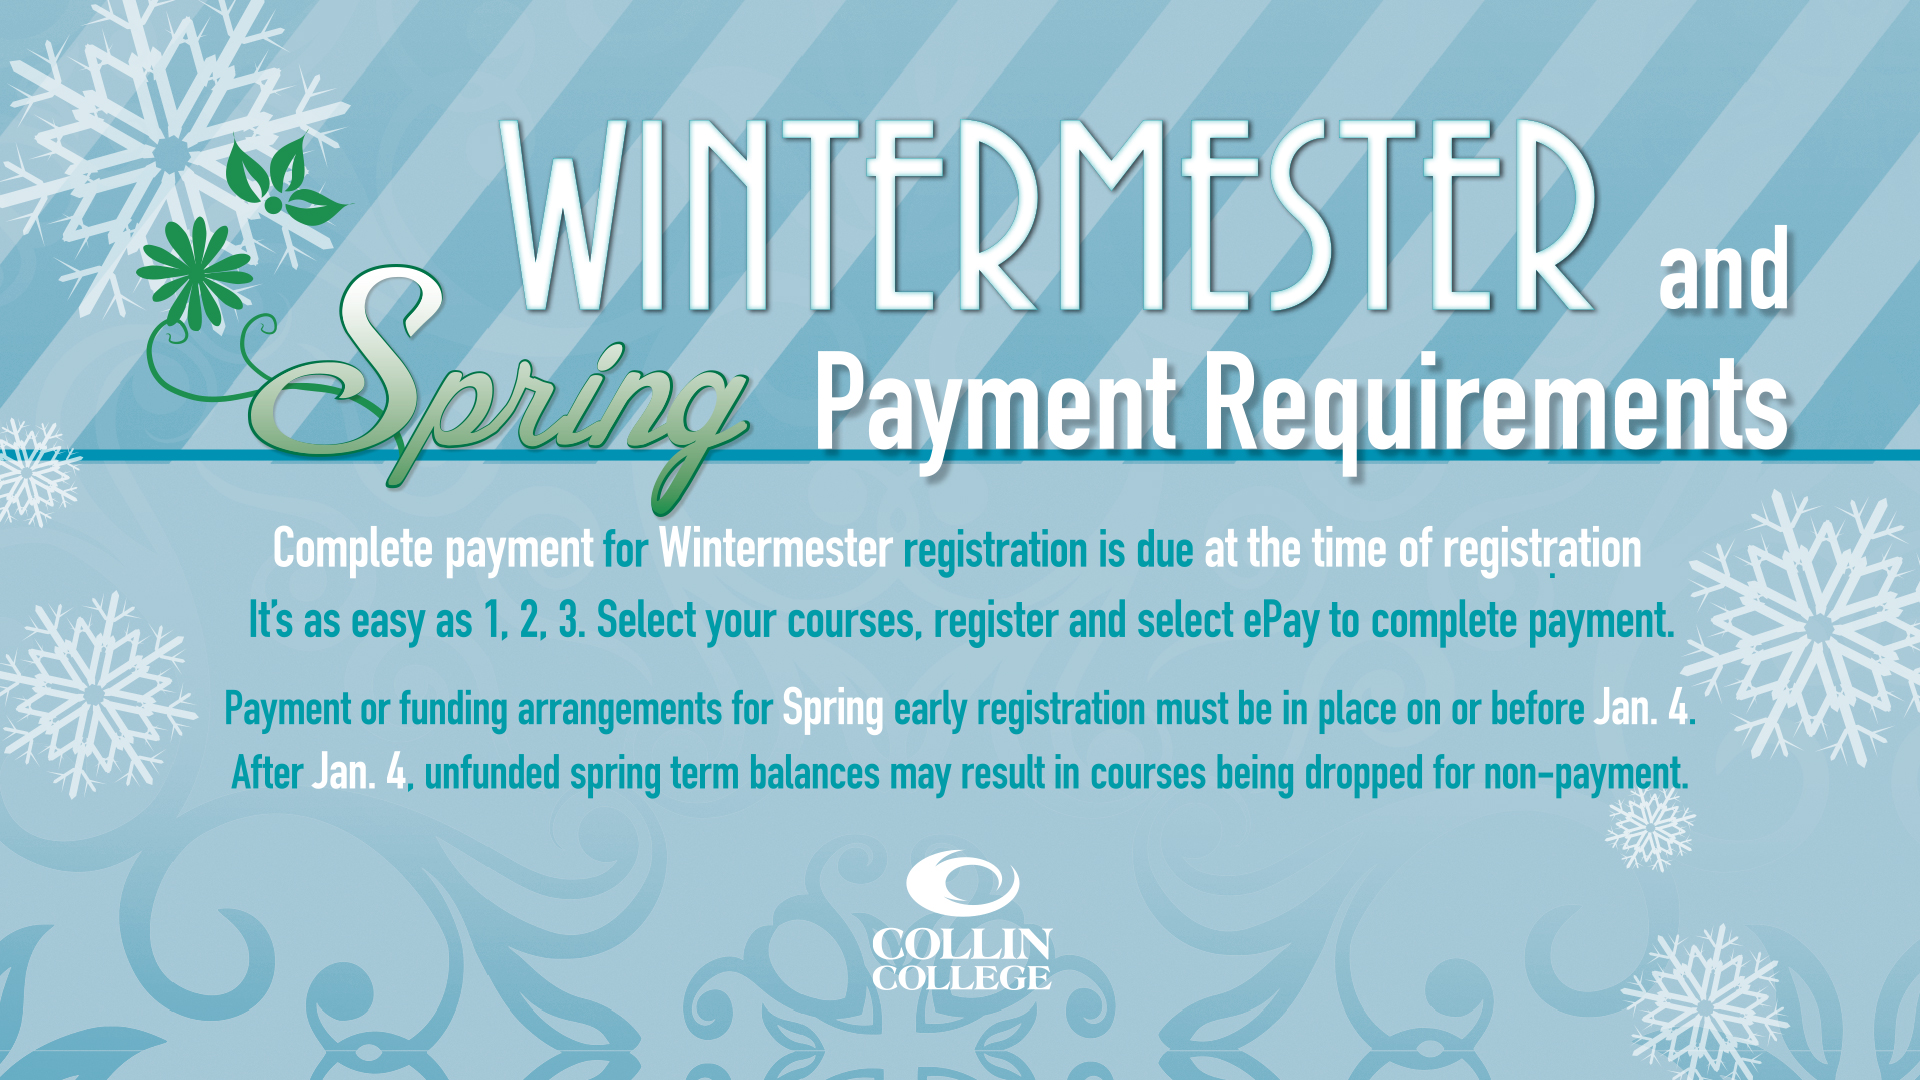 Wintermester and Spring Payment Requirements